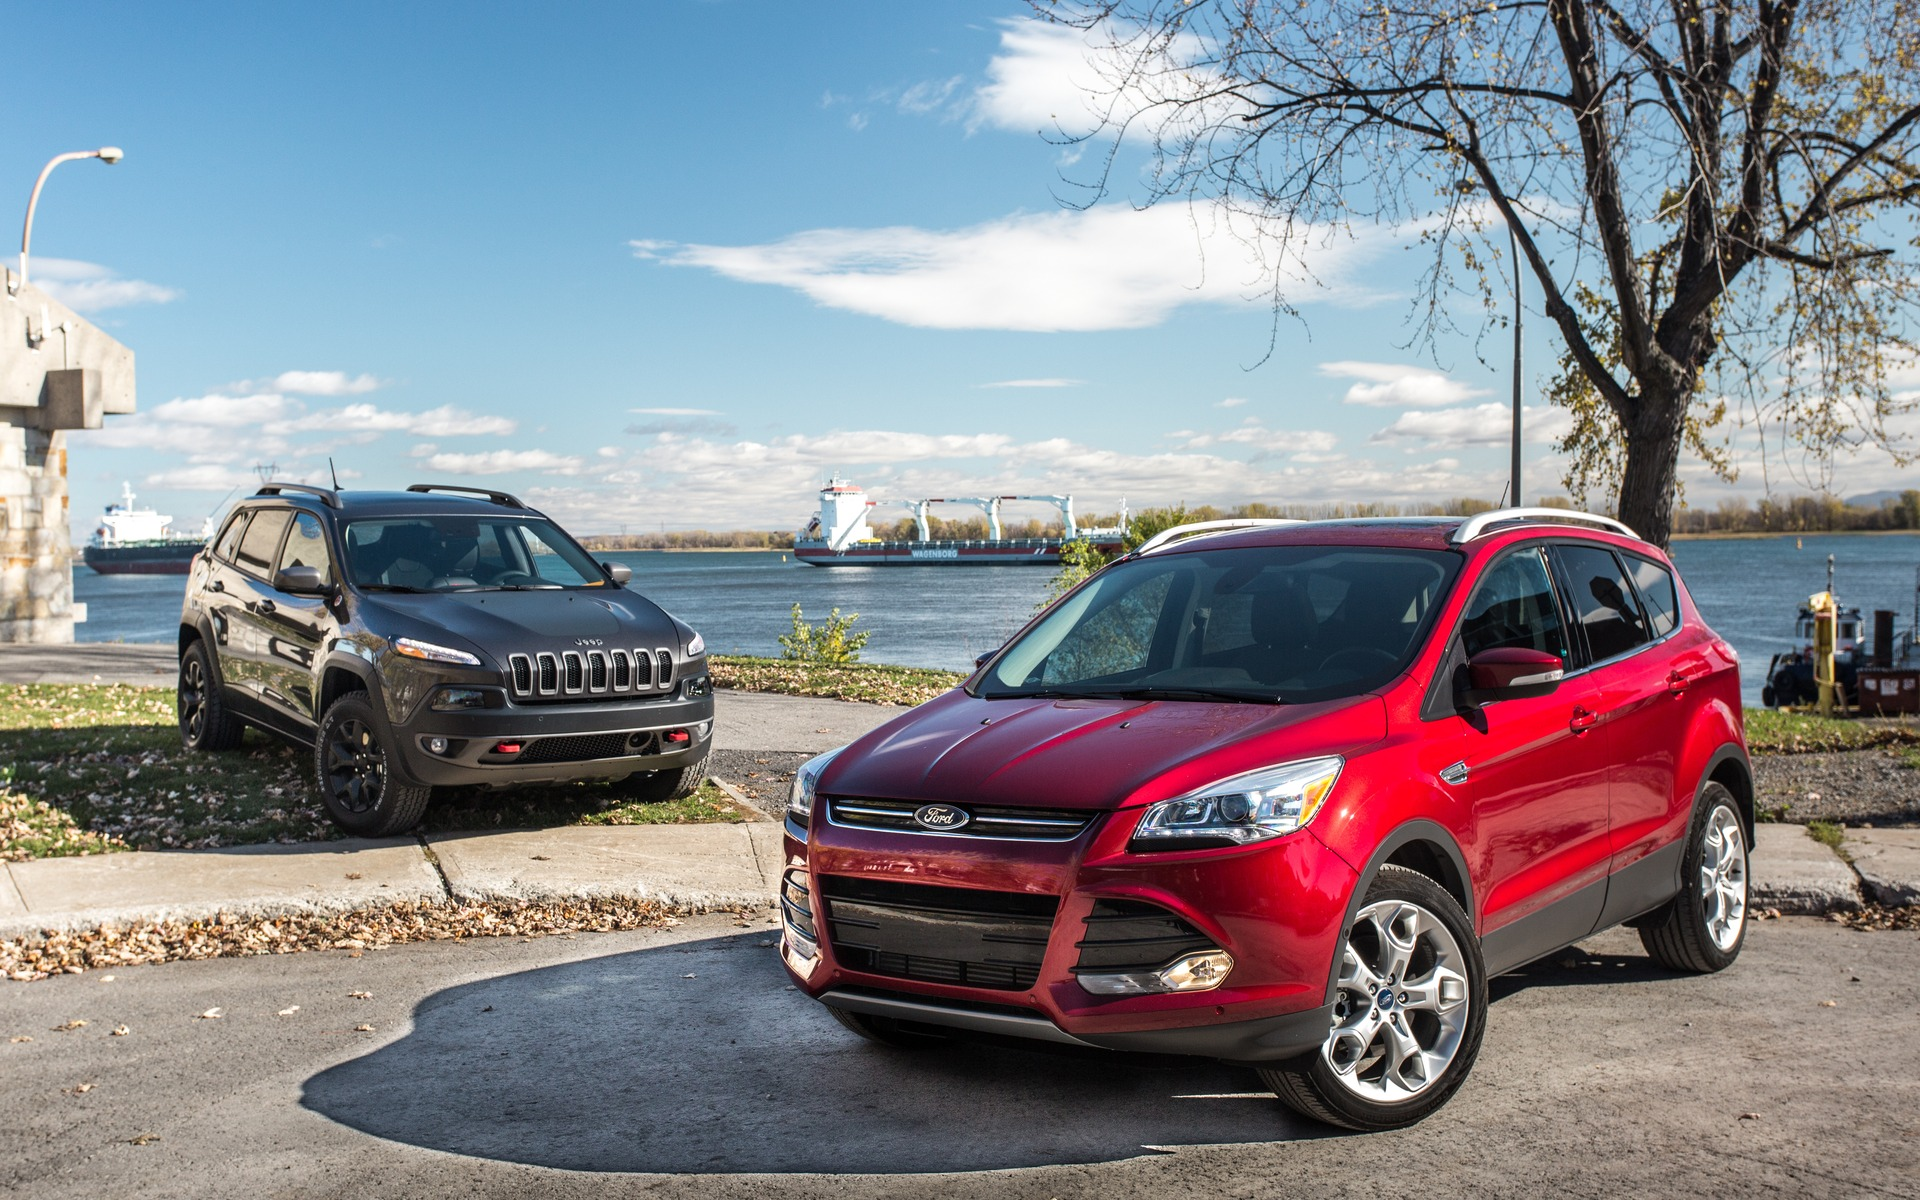 The Jeep Cherokee Trailhawk and Ford Escape Titanium look nothing alike.